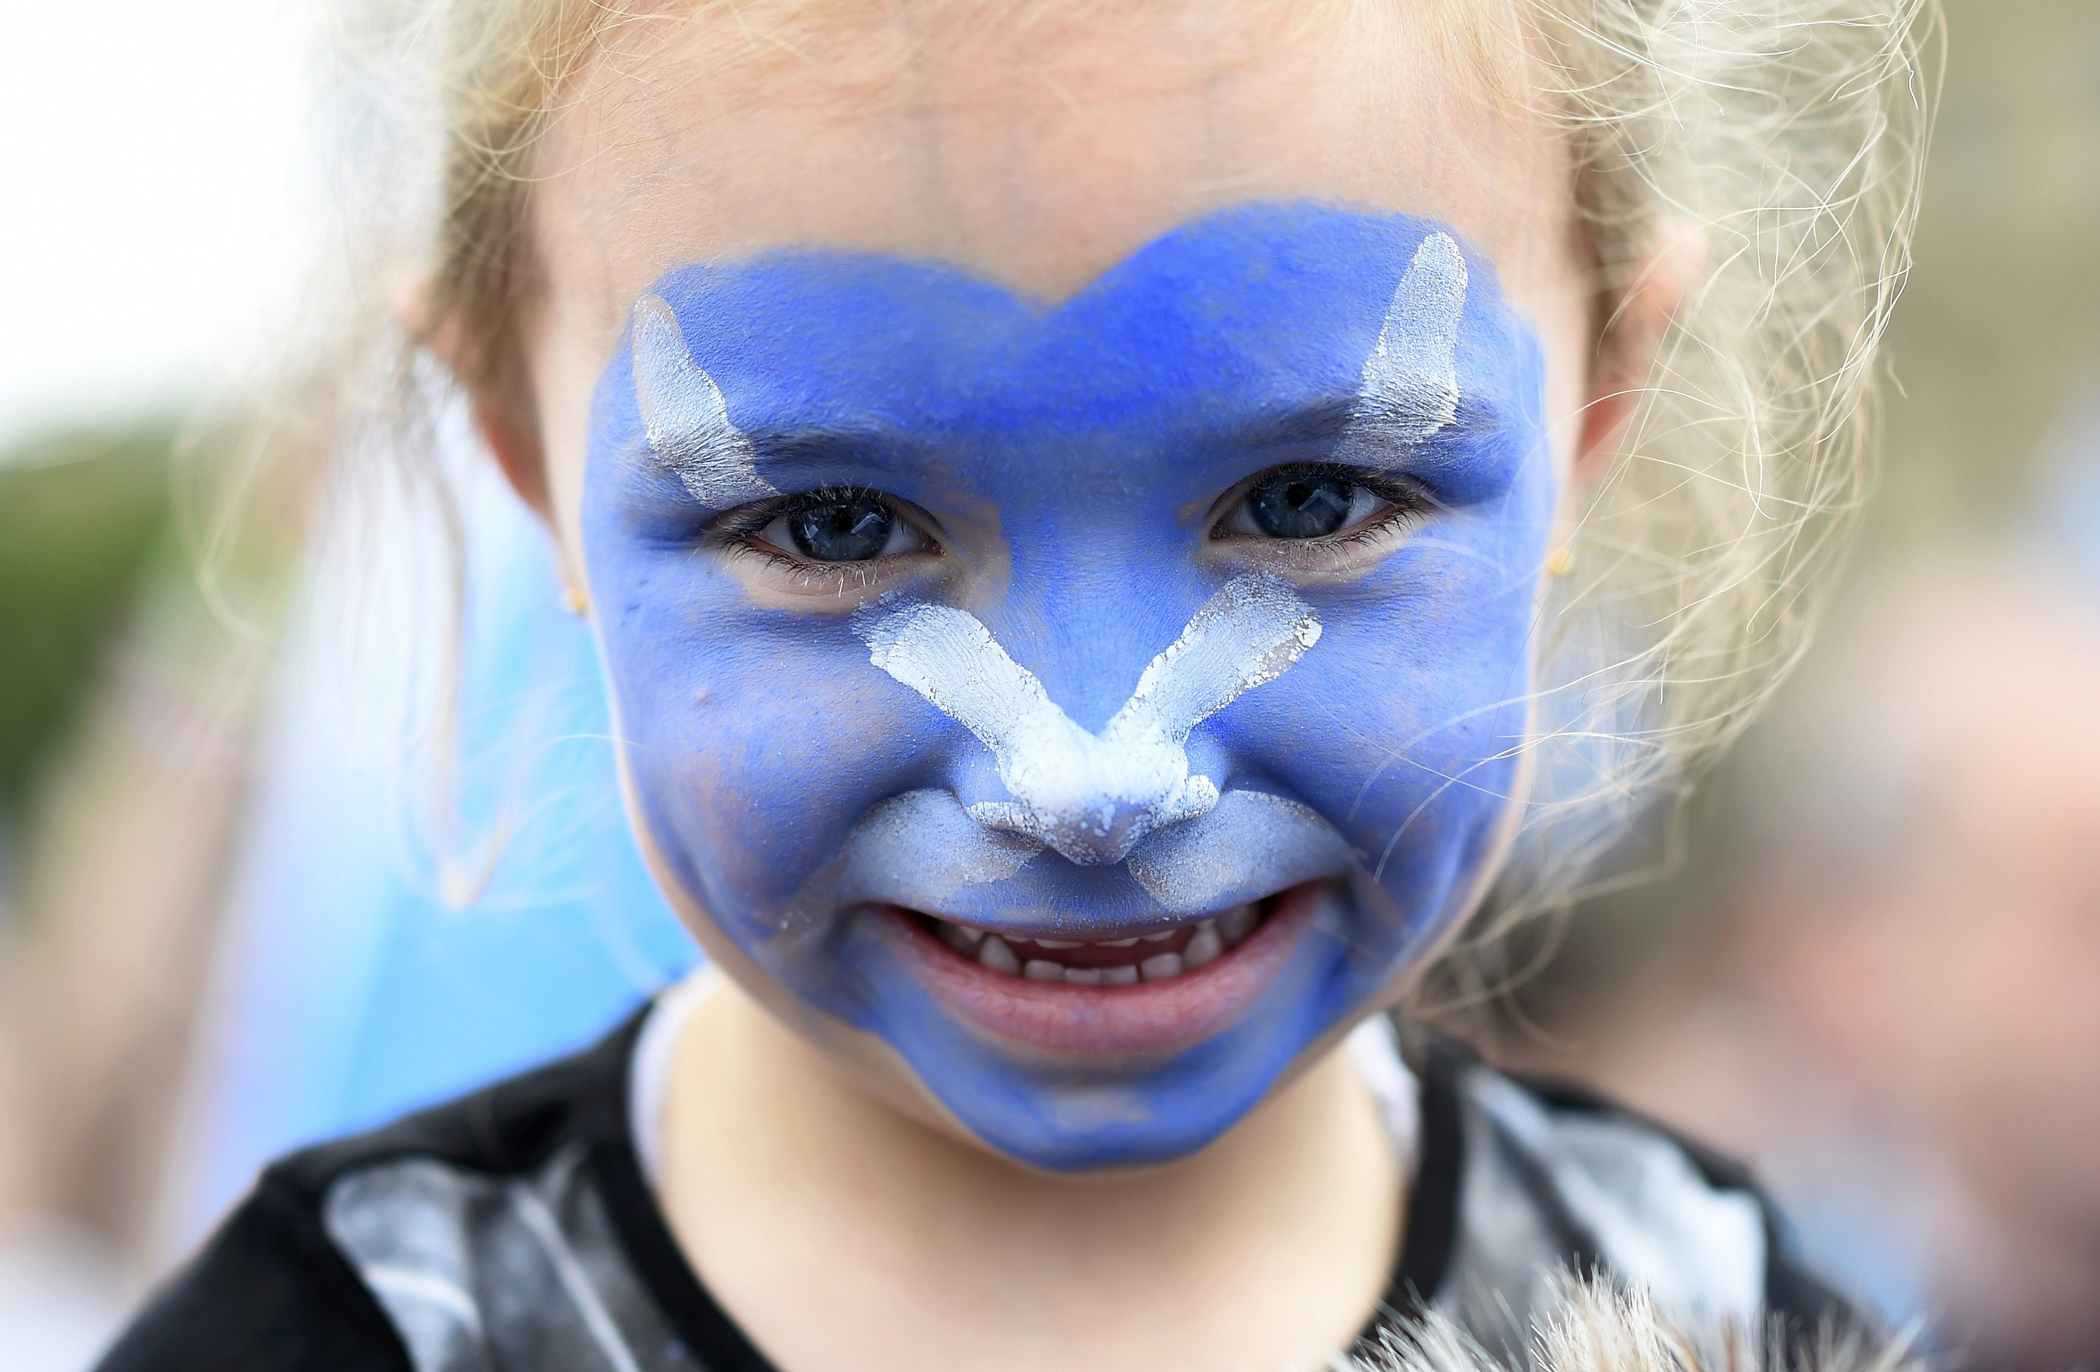 A young girl with a Scottish Saltire painted on her face waits outside a 'Yes' campaign rally in Glasgow, Scotland, Sept. 17, 2014.